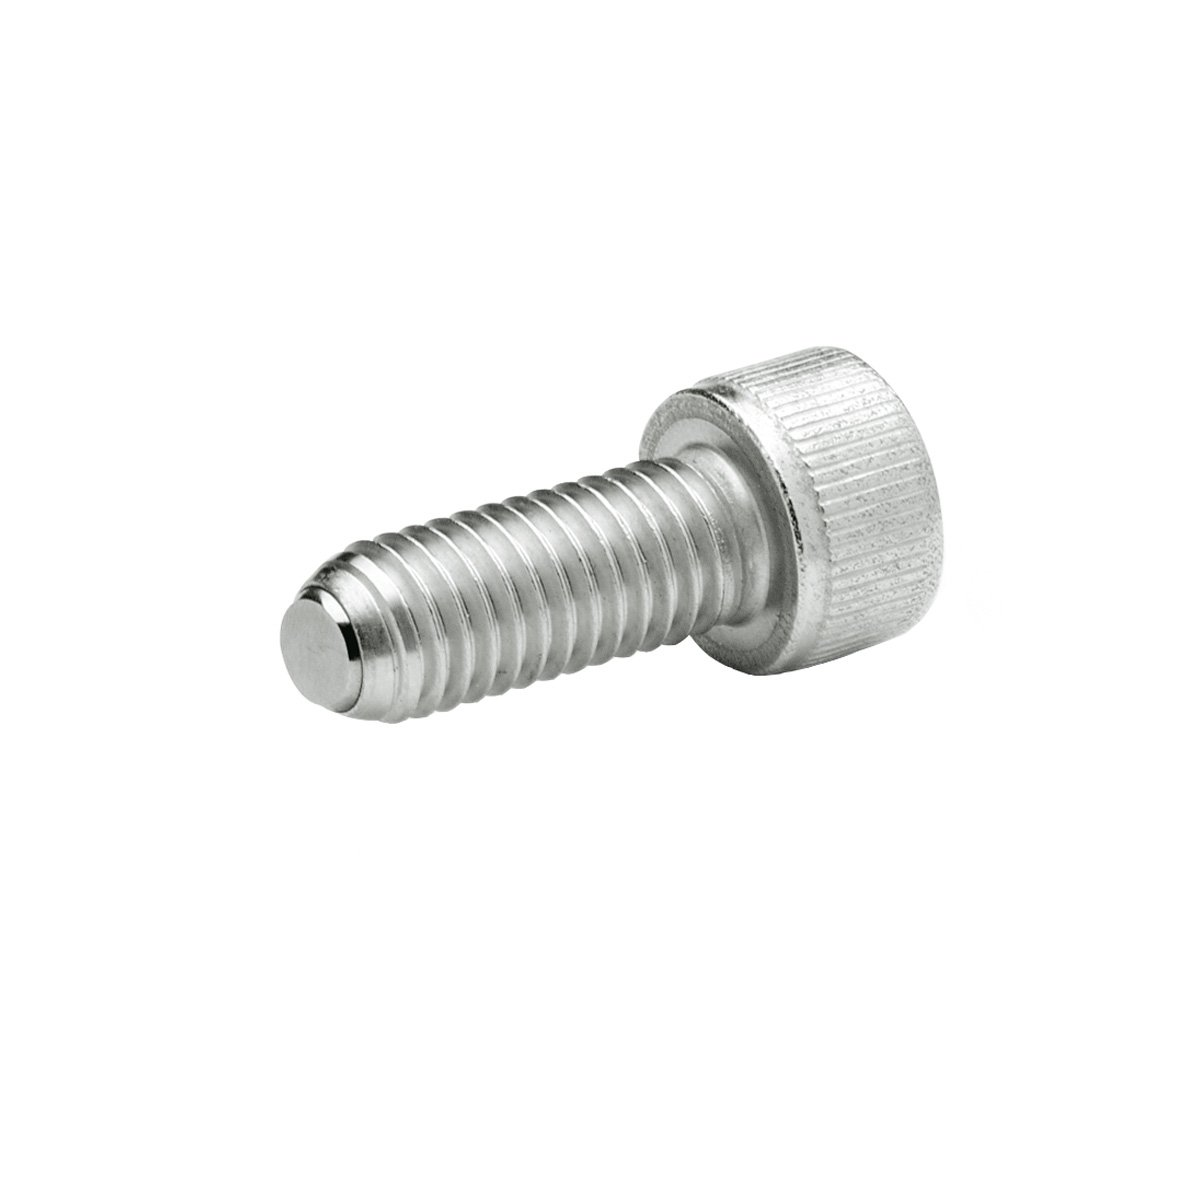 M12 x 50 mm Thread Length Safety Twist Feature Stainless Steel Ganter J.W Winco 12N50P48//VN GN606-NI Socket Head Cap Screw with Flat Ball